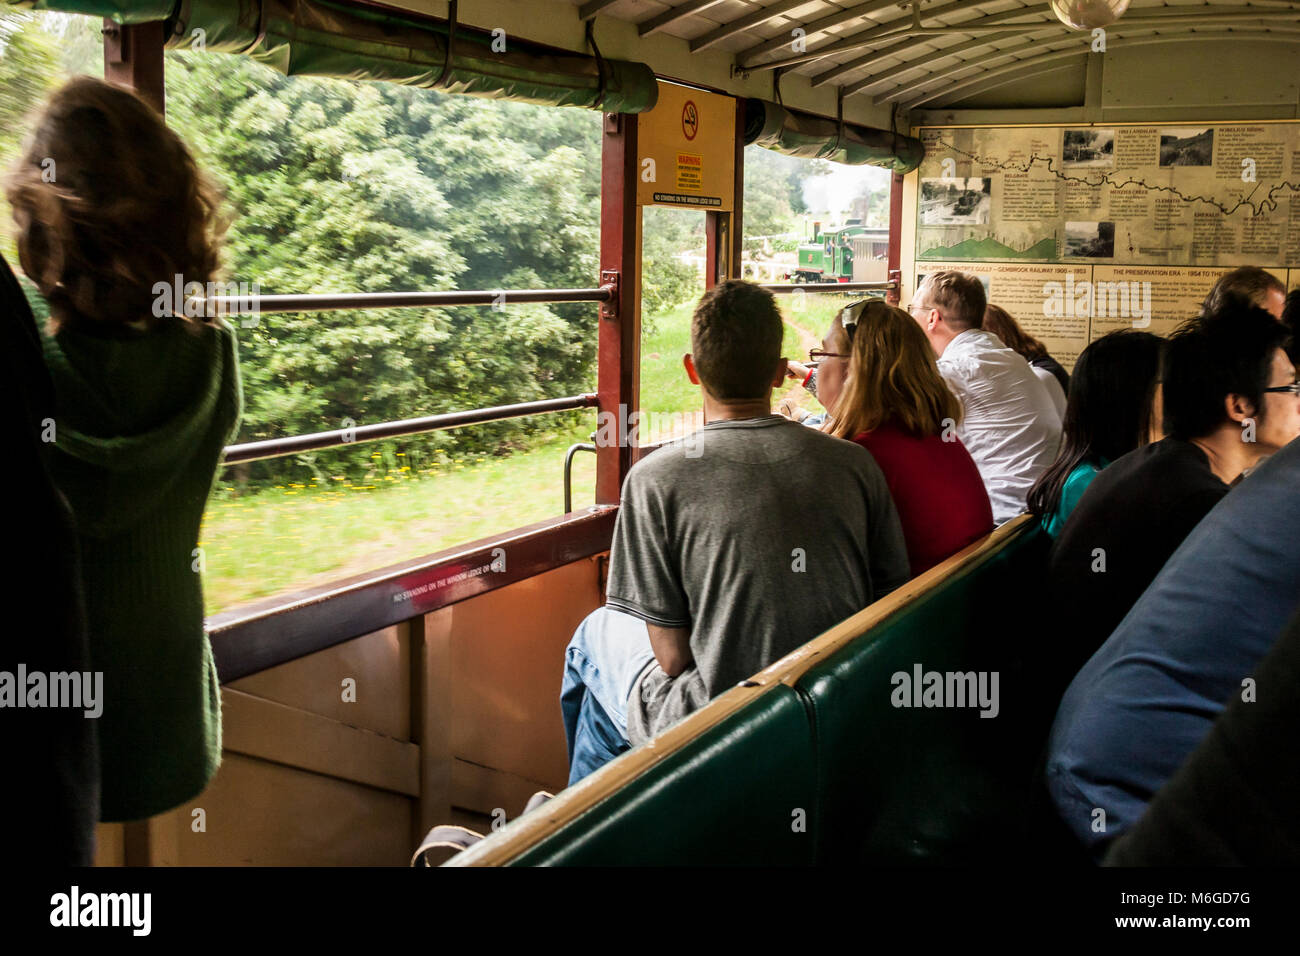 Carriage of Puffing Billy steam train with passengers. Puffing Billy is historical narrow railway in the Dandenong - Stock Image